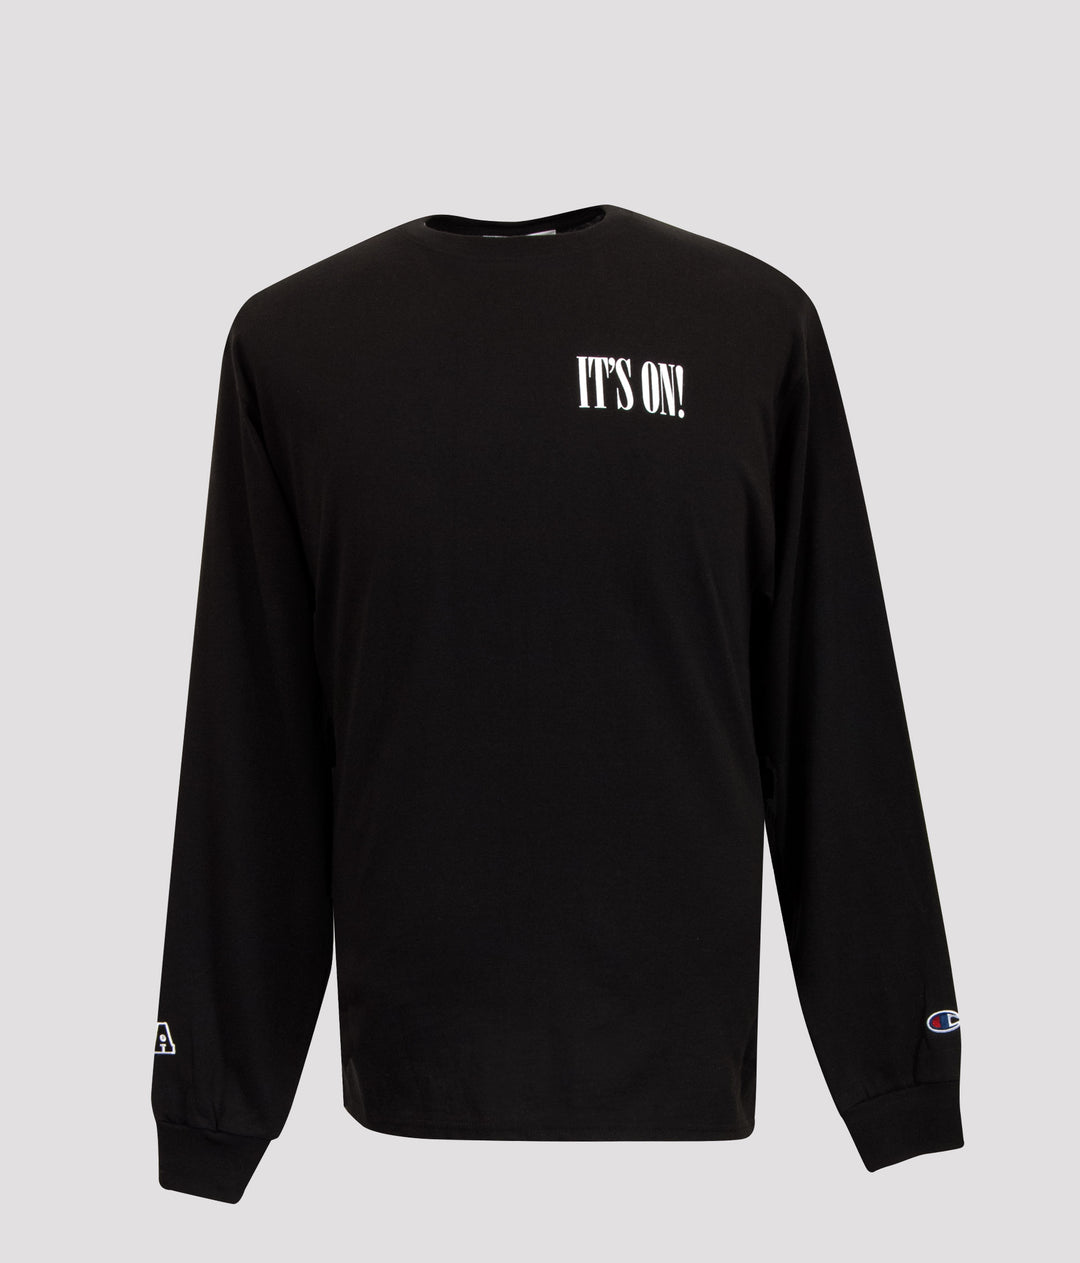 IT'S ON! Longsleeve t-shirt